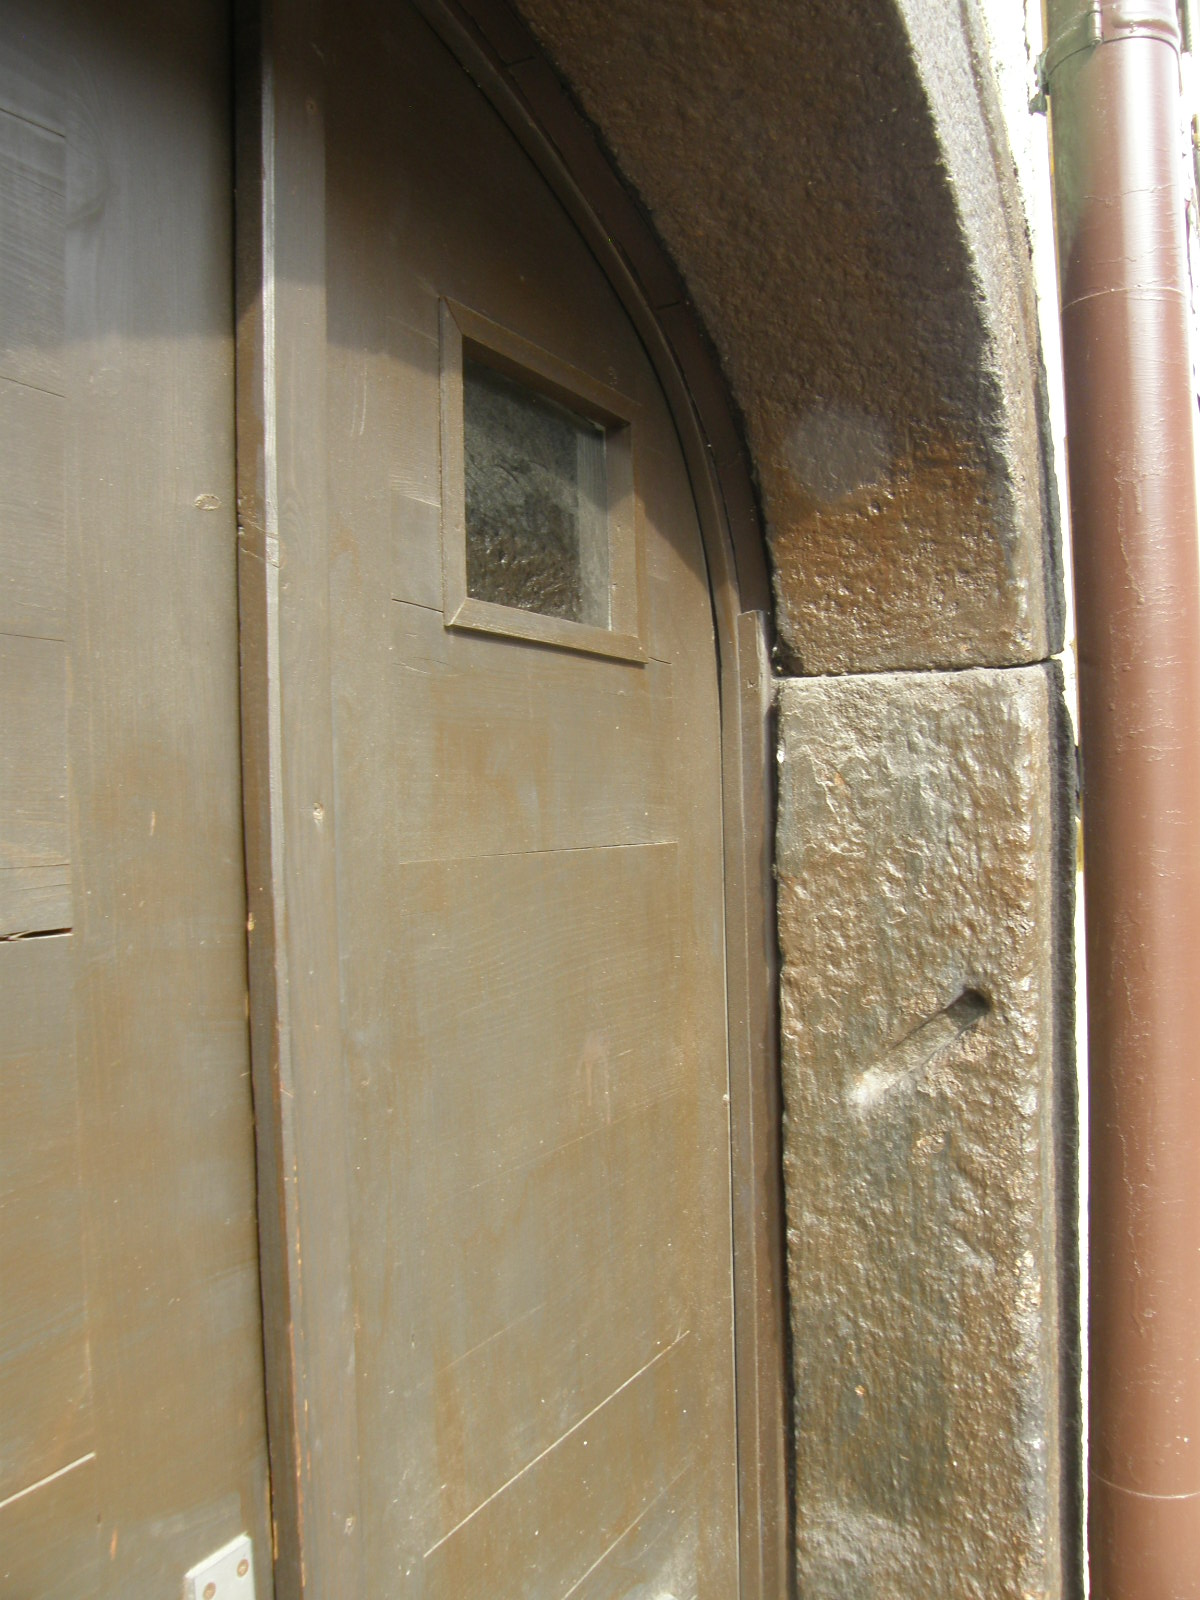 FilePlace for a mezuzah on the stone doorframe.JPG & File:Place for a mezuzah on the stone doorframe.JPG - Wikimedia Commons